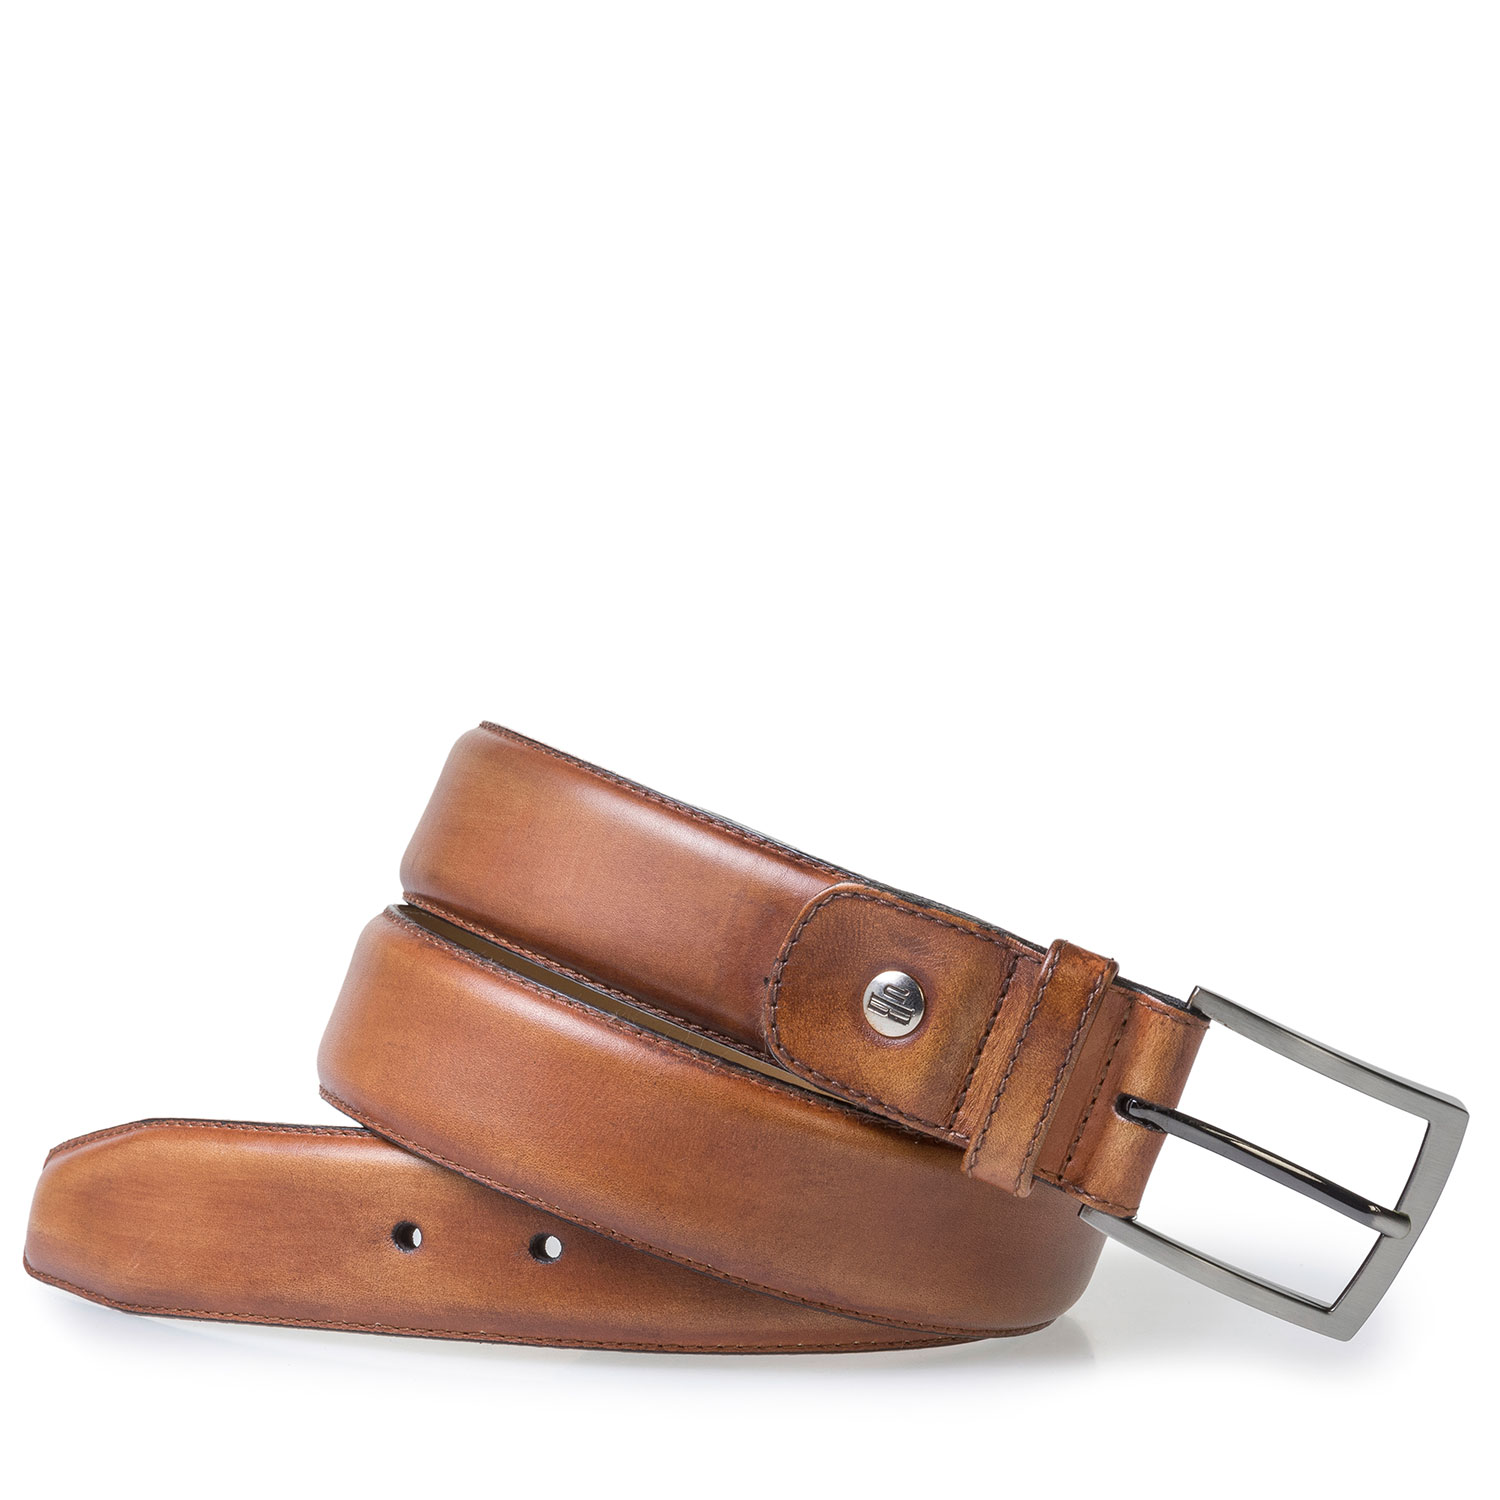 75533/15 - Dark cognac-coloured calf leather belt